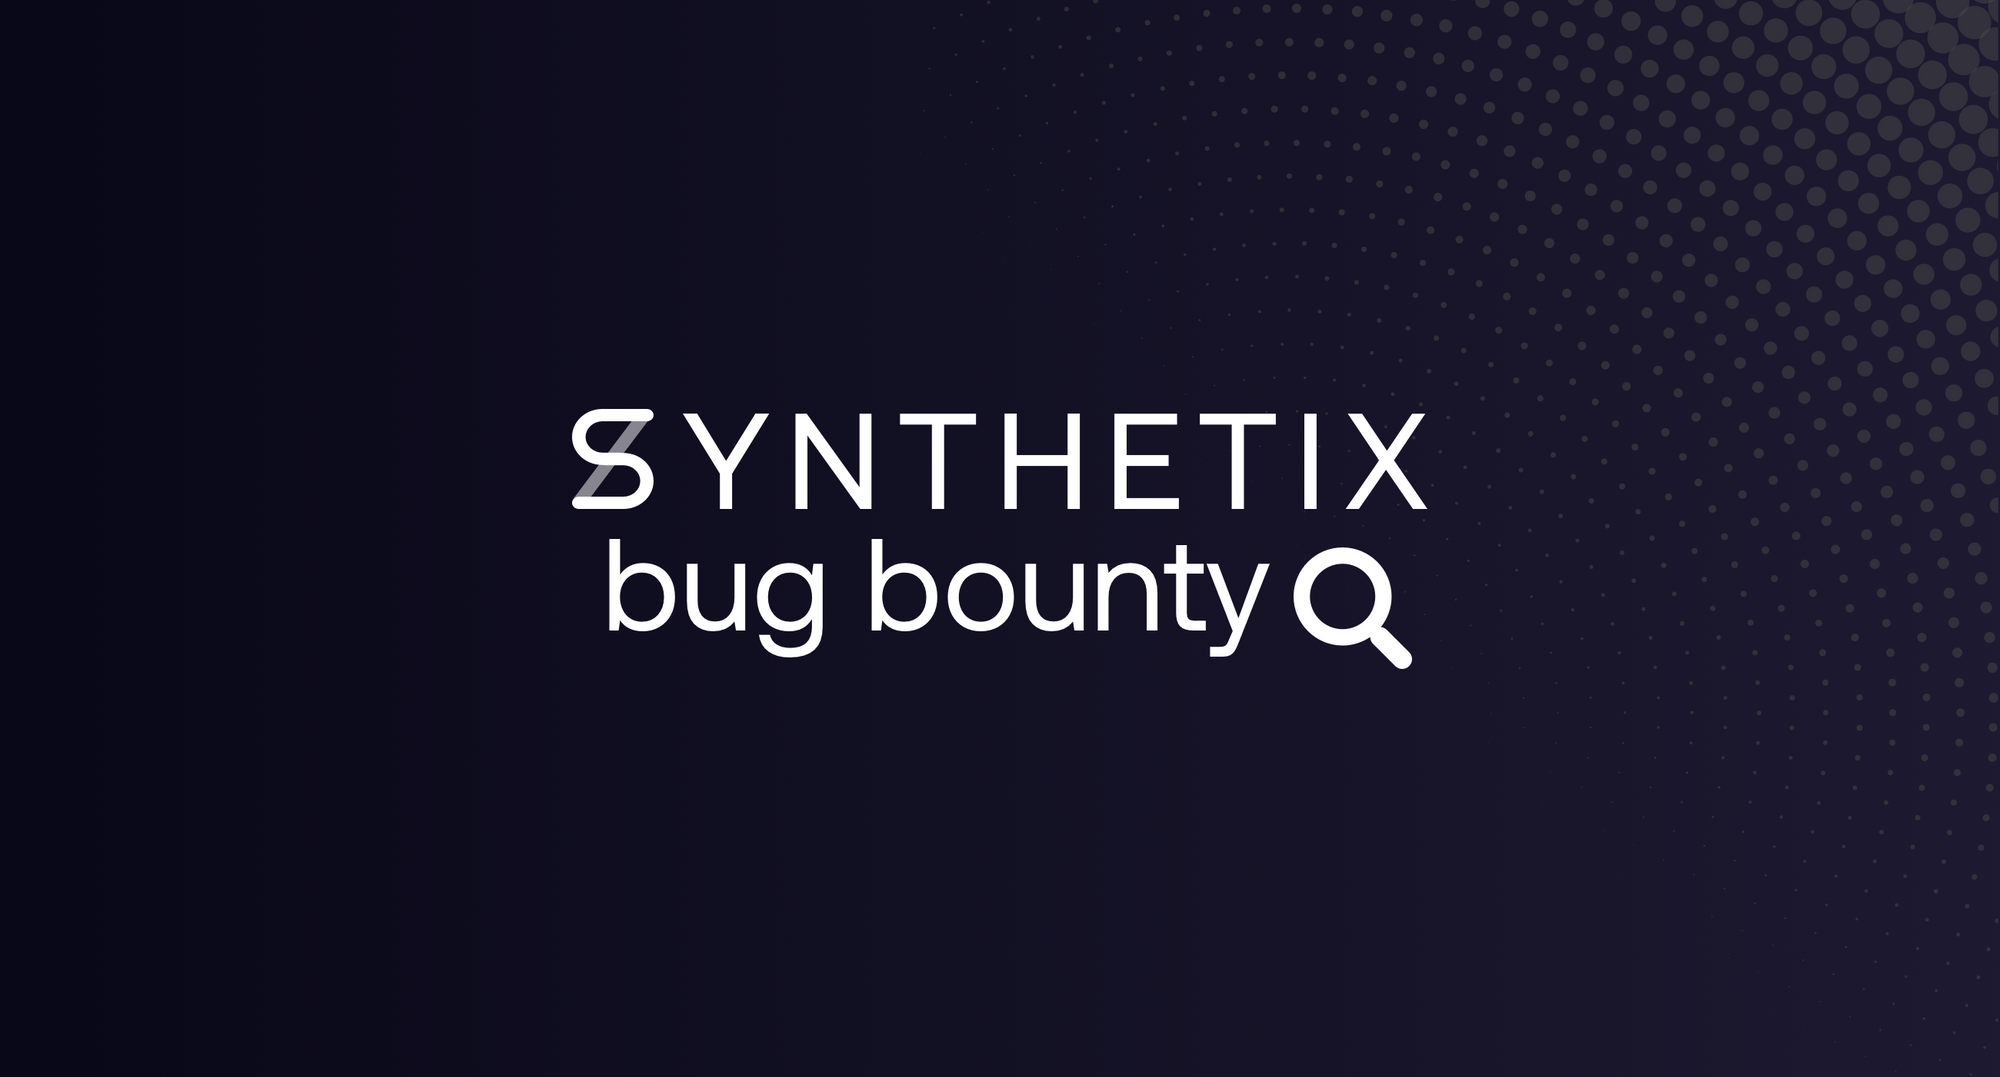 Synthetix Bug Bounty